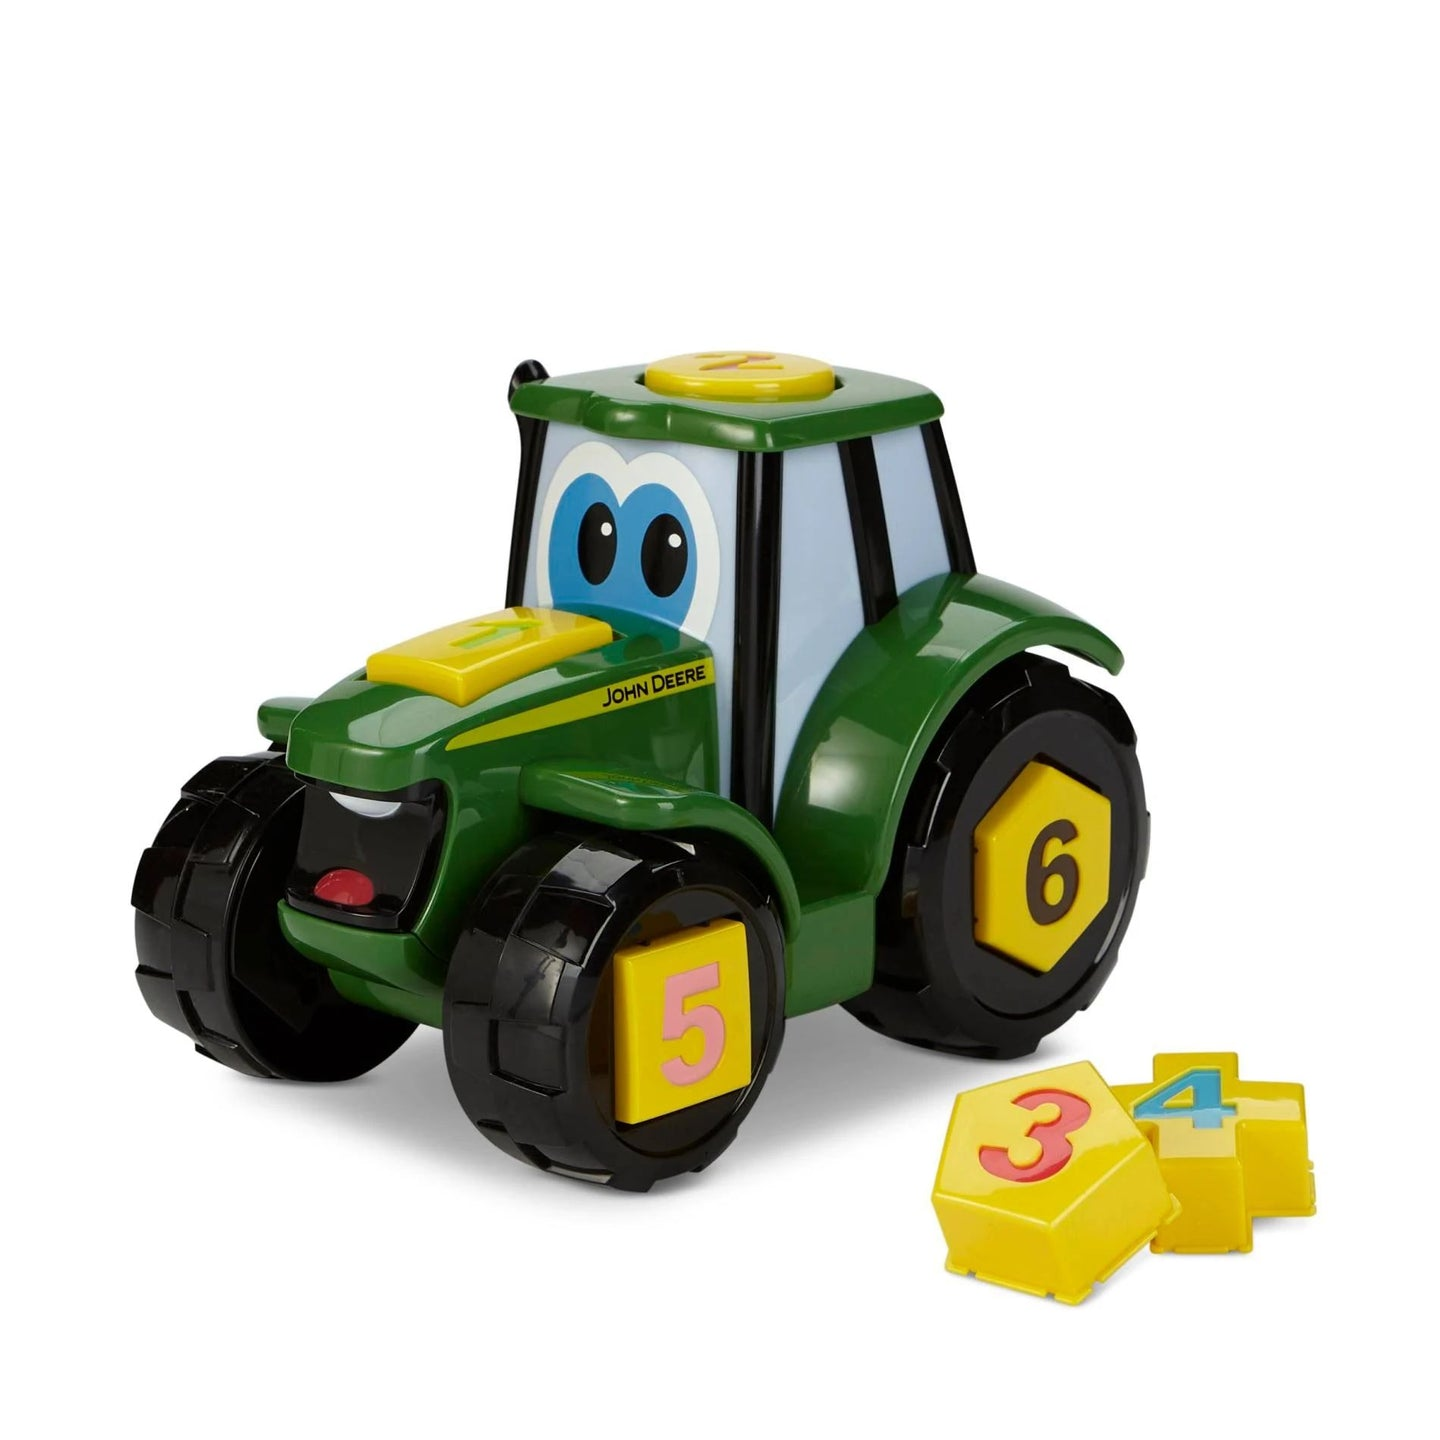 John Deere Learn N Pop Johnny - tractorup2